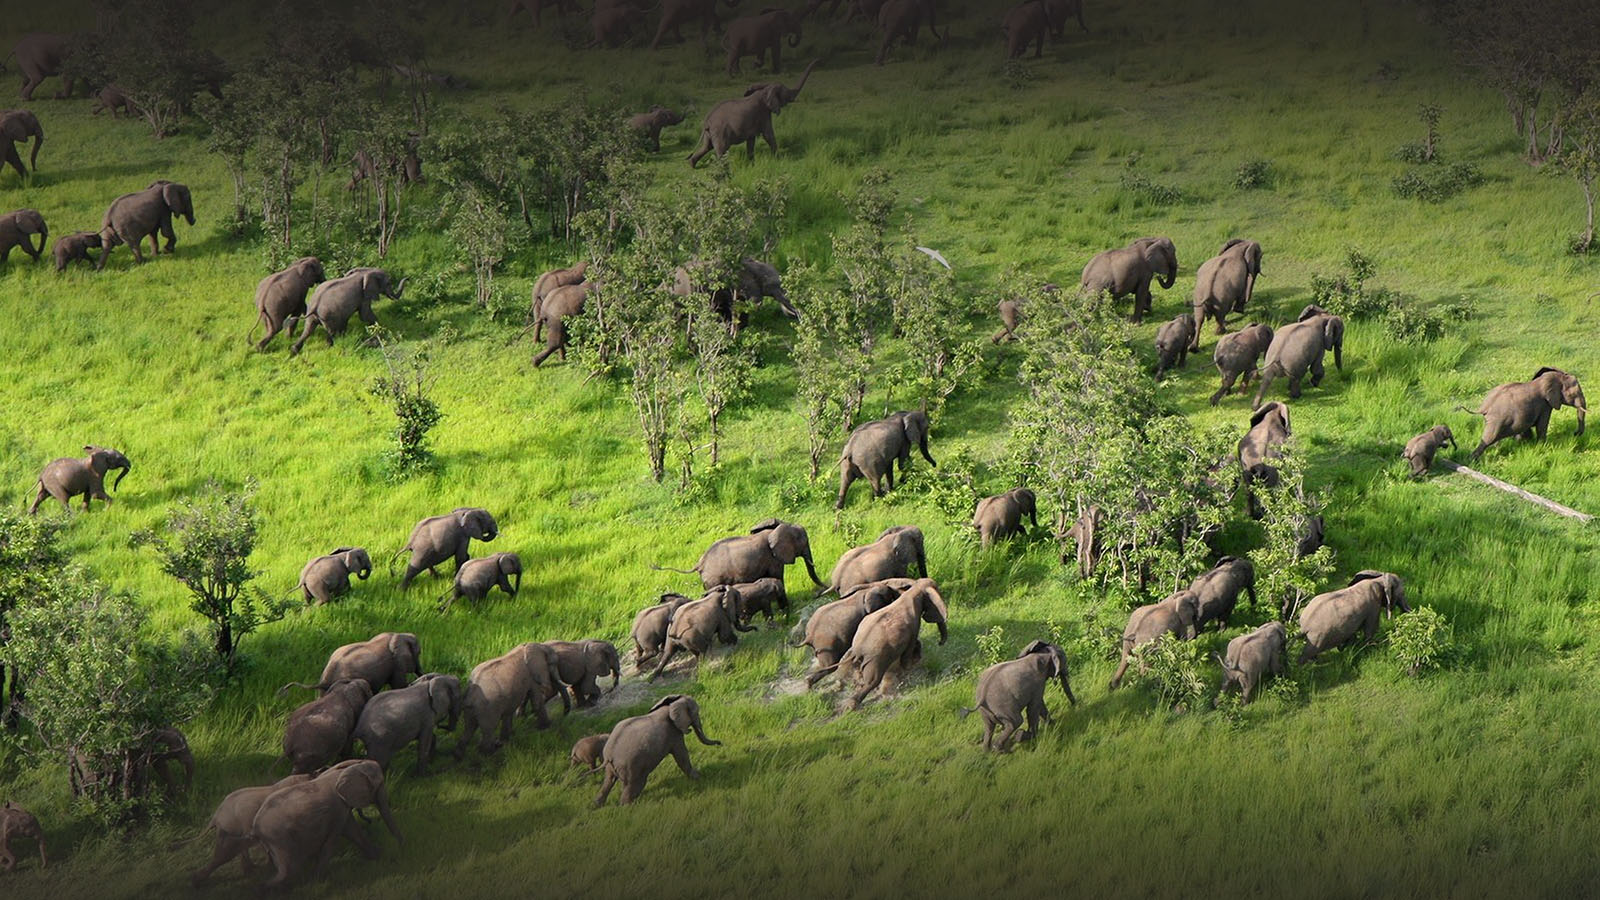 mfuwe-bush-camp-zambia-in-style-safari-packages-south-luangwa-national-park-tours-elephant-herd